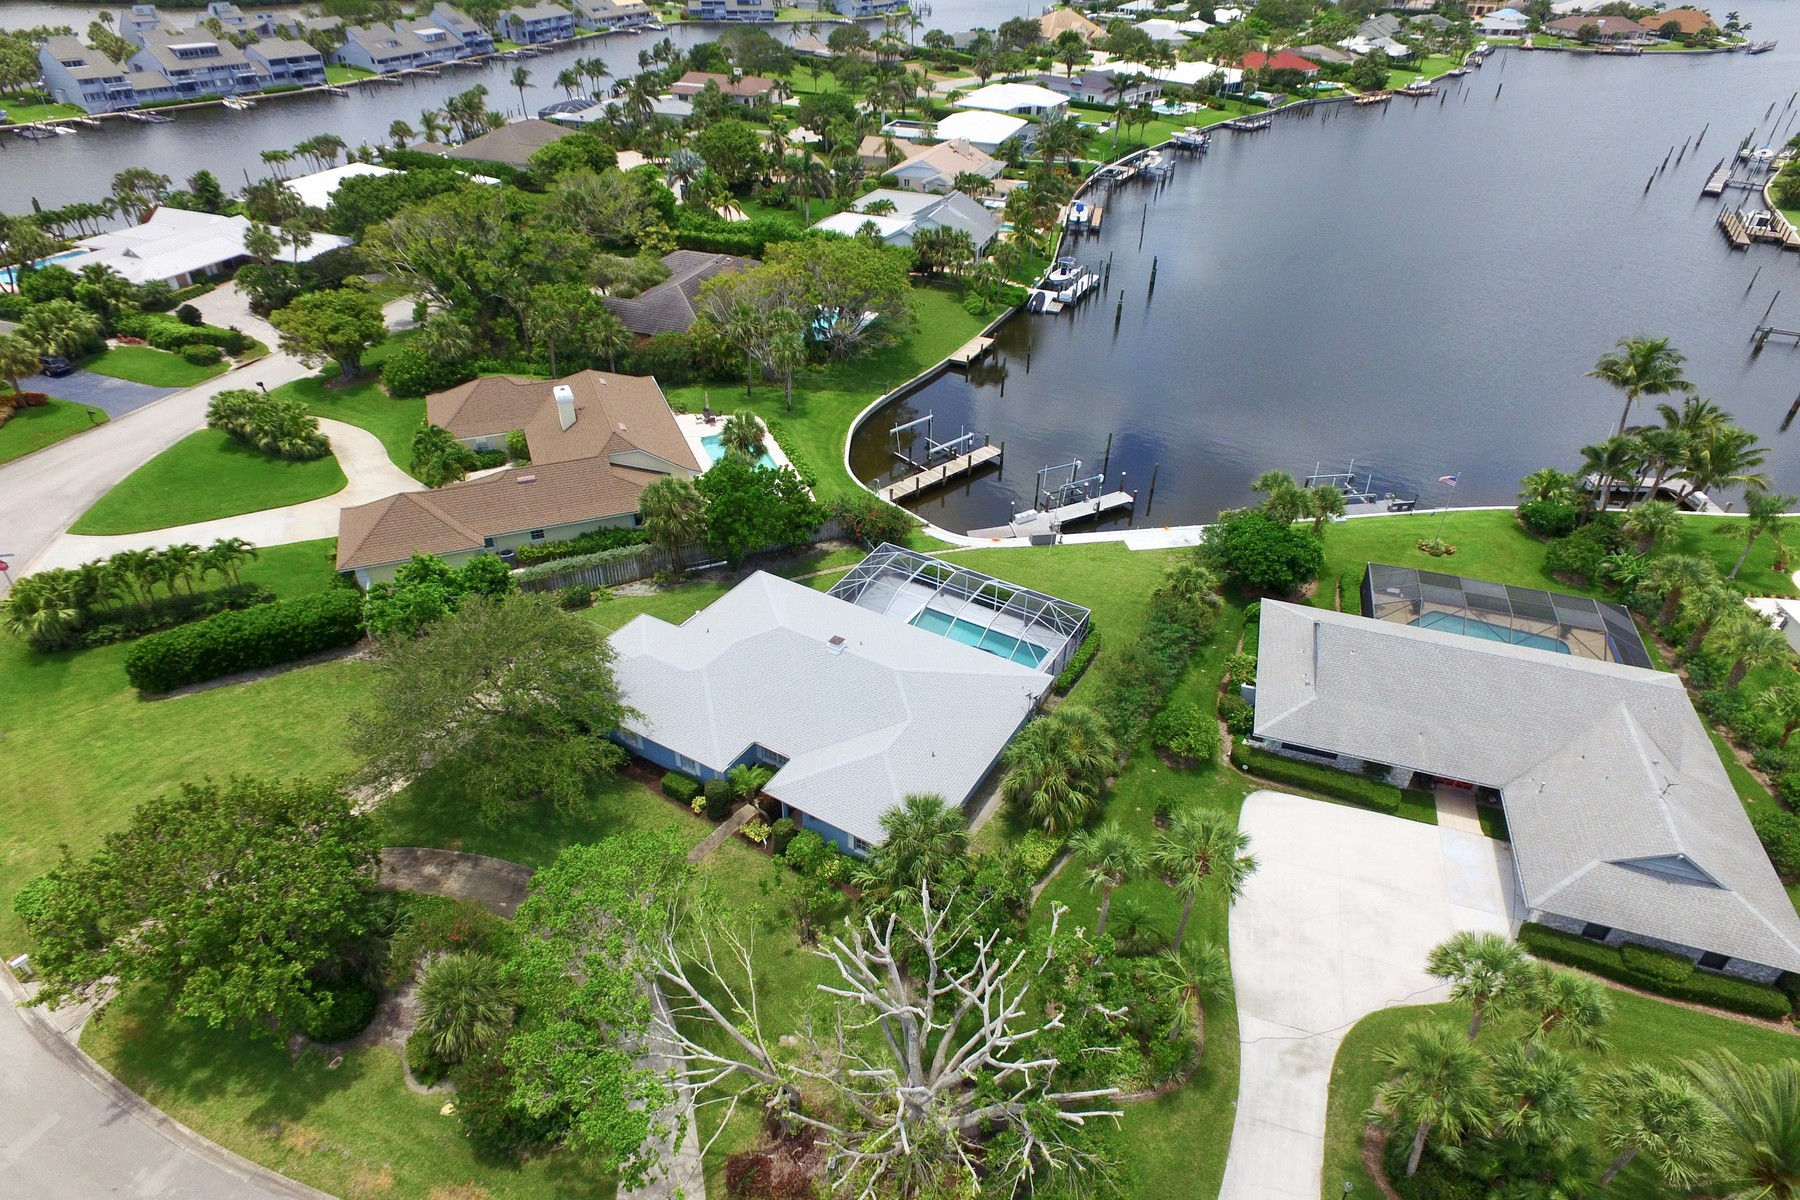 Single Family Home for Sale at Waterfront Pool Home on Almost One Half Acre 1175 Bowline Drive Vero Beach, Florida 32963 United States